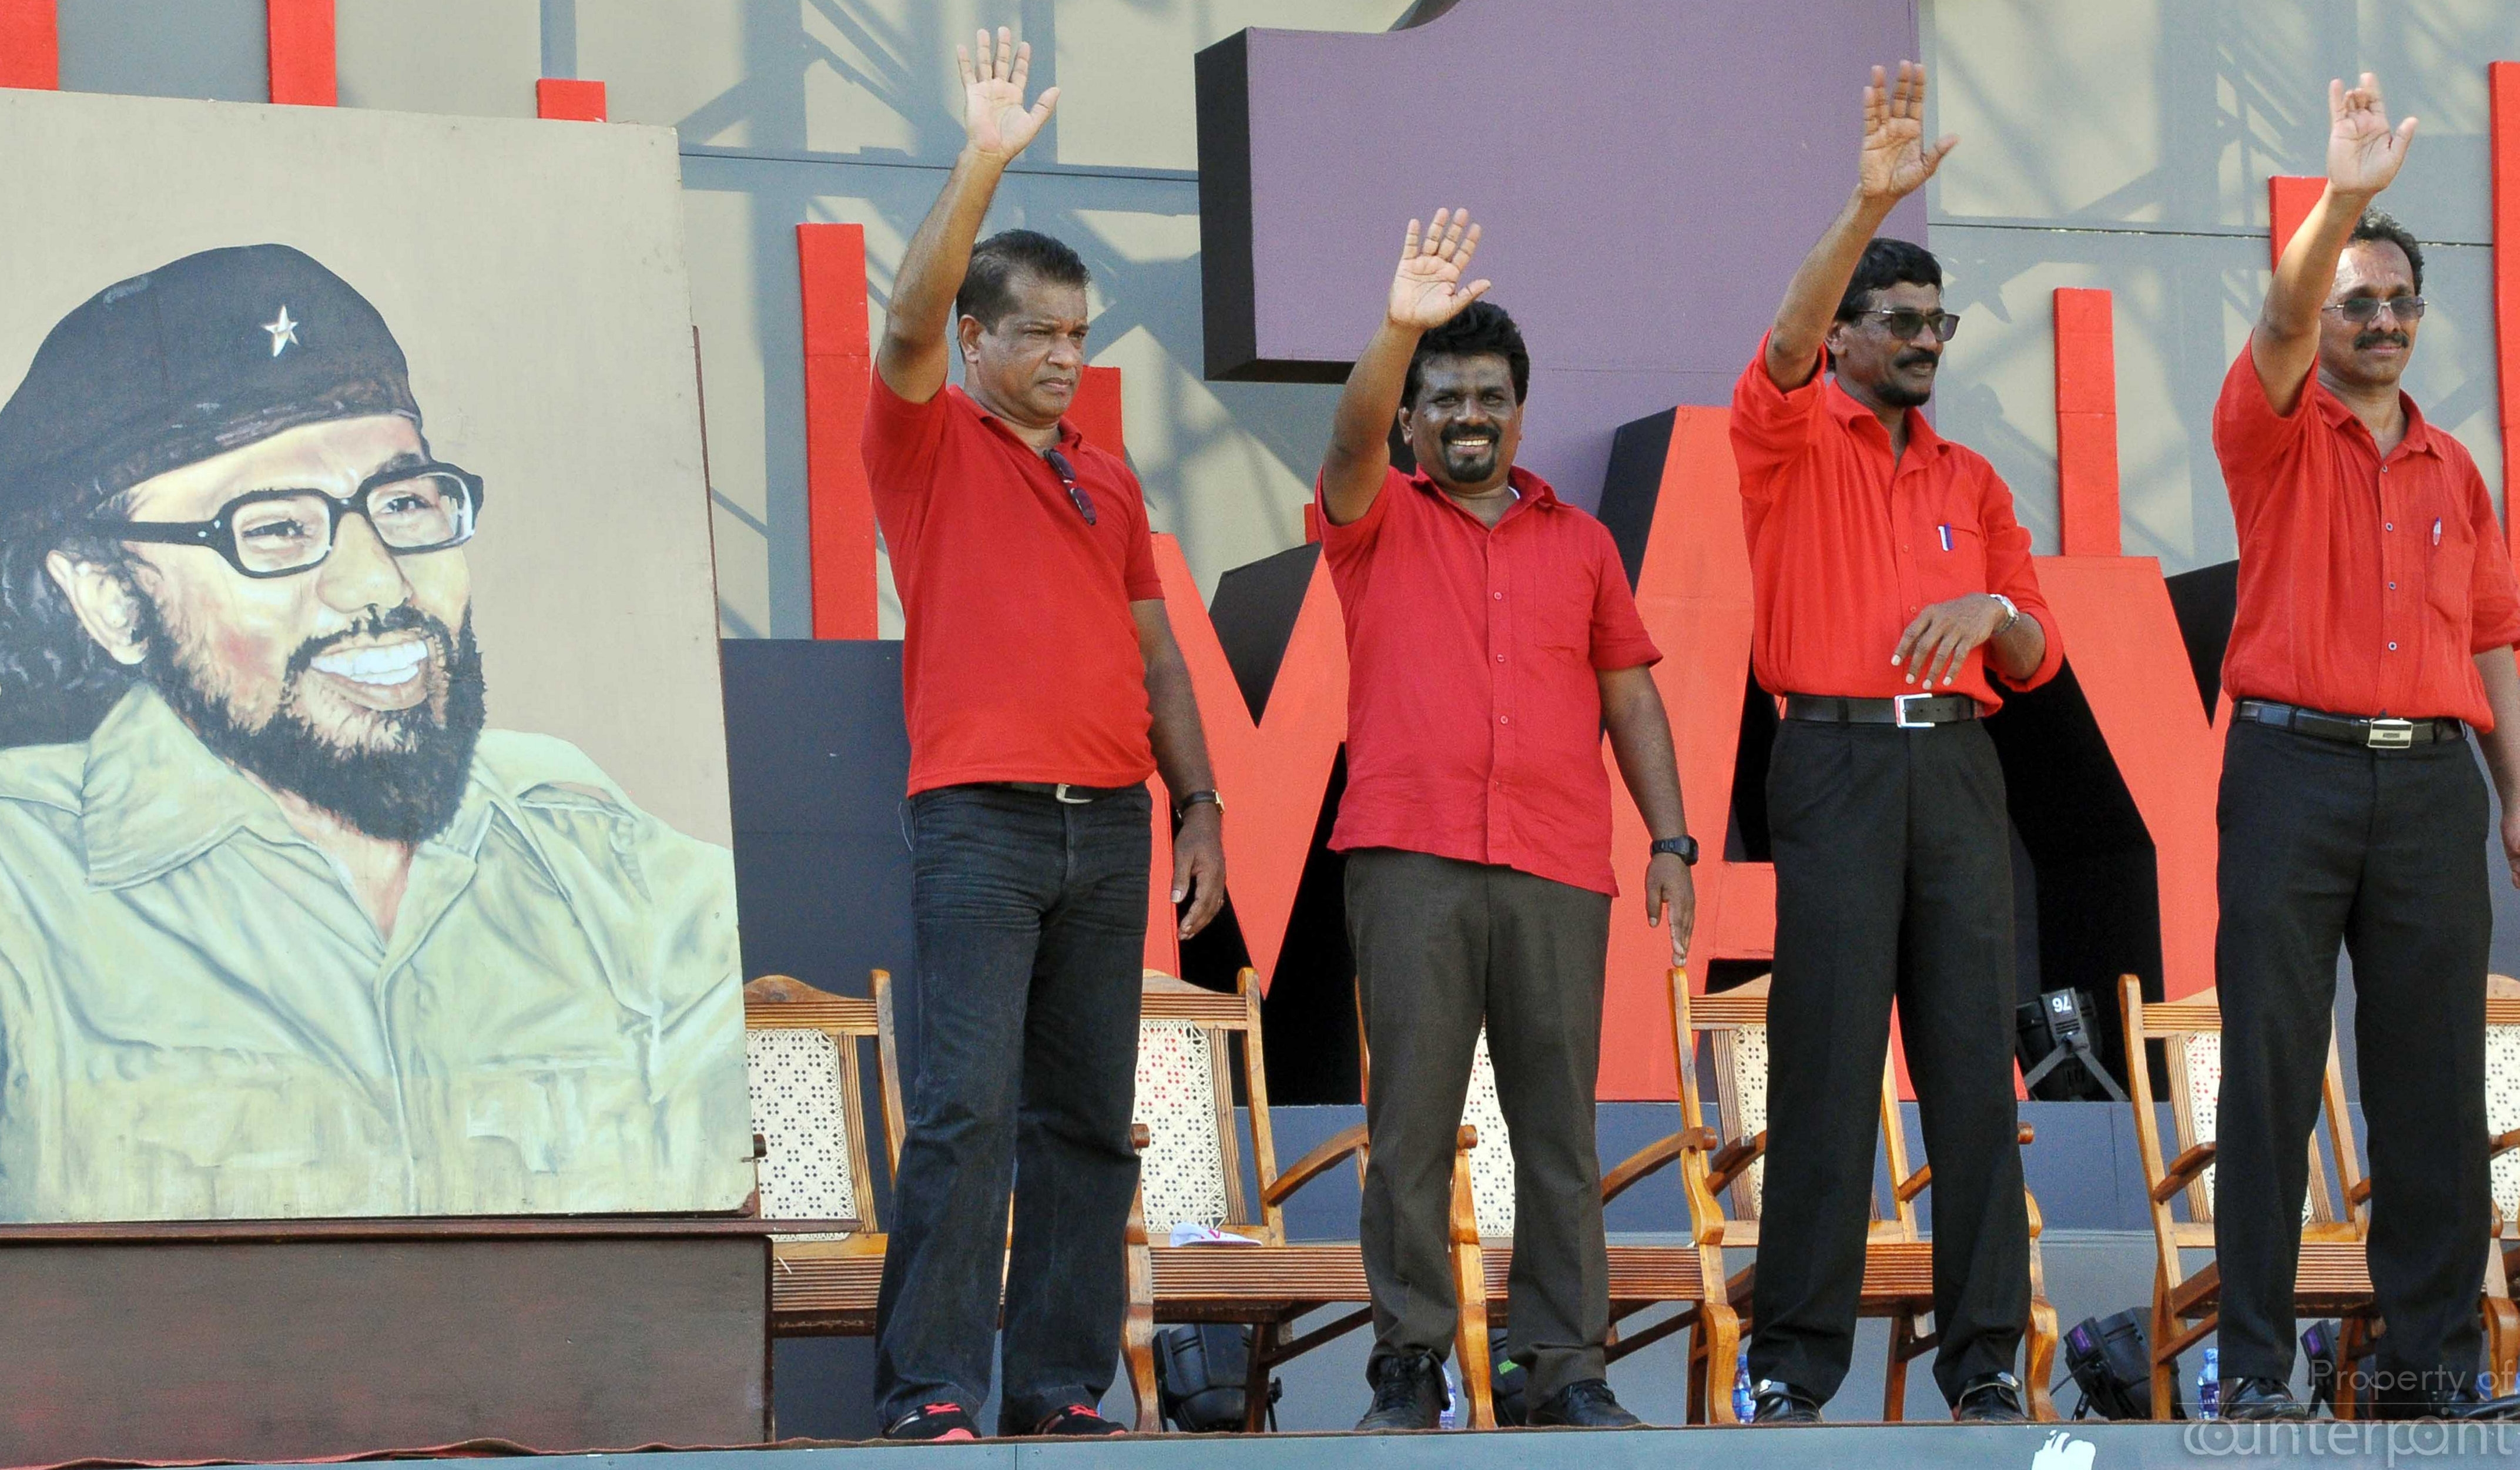 The JVP plans to canvass all political forces, to win support for their bid to abolish the Executive Presidency through the 20th Amendment.